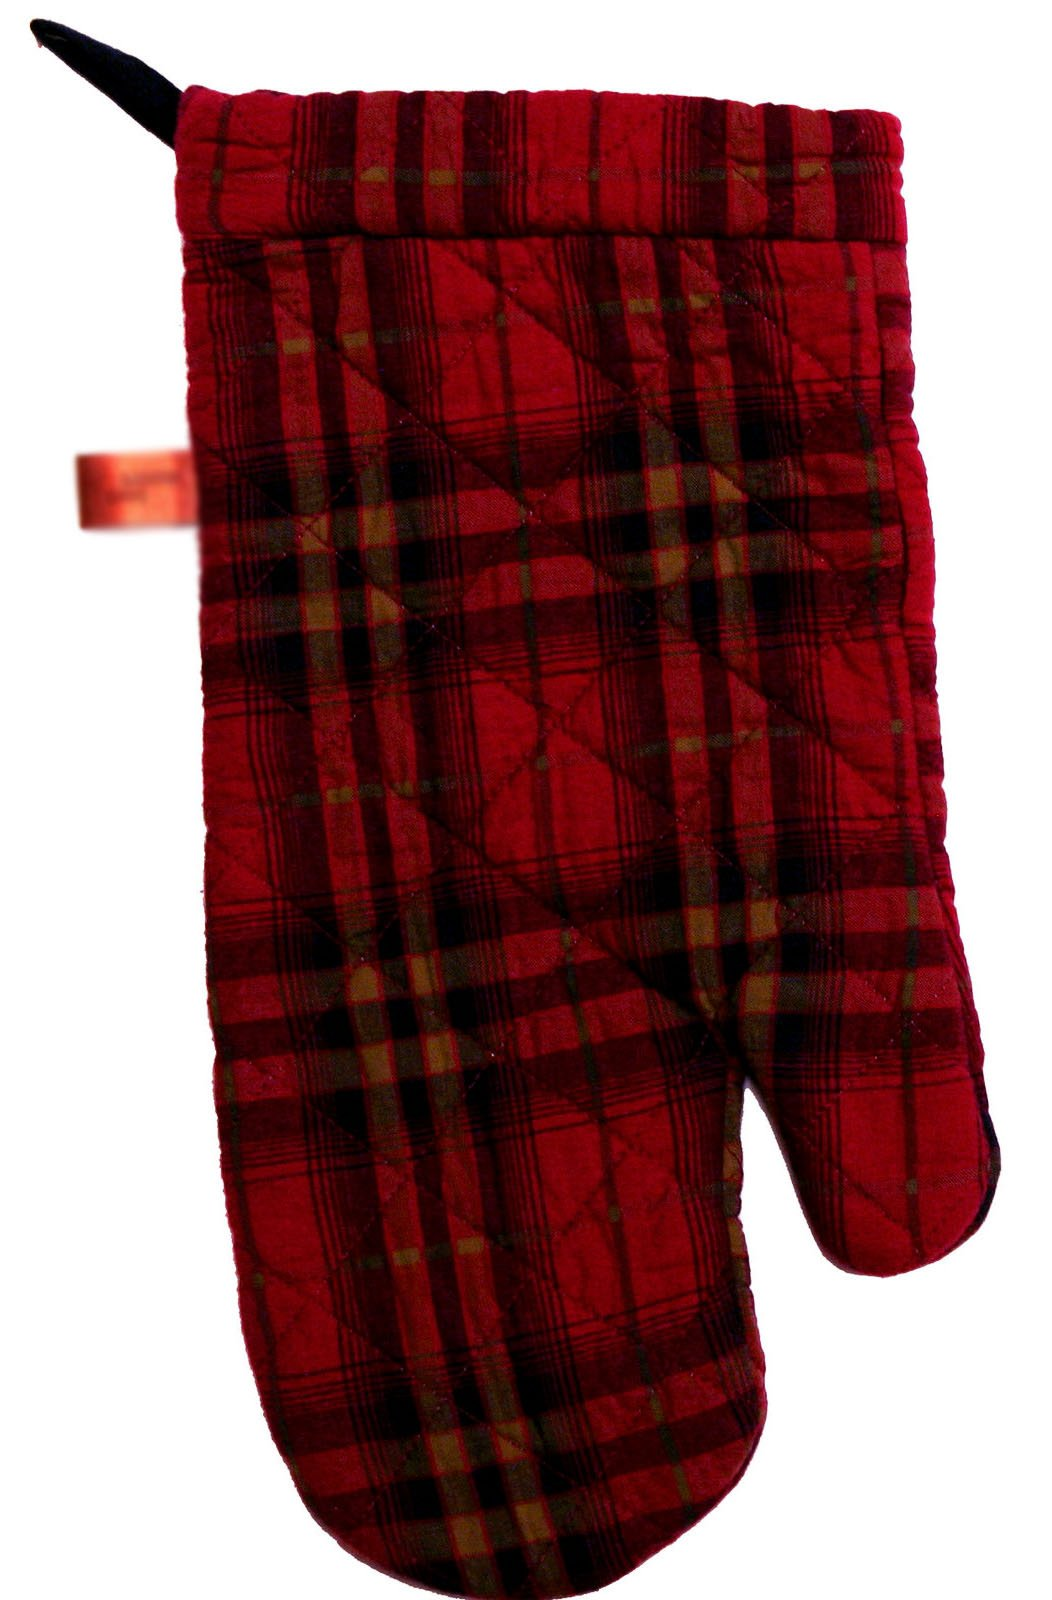 "Custom & Durable {14"" x 6.5"" Inch Each} 4 Set Pack of Mid Size ""Non-Slip"" Pot Holders Gloves Made of Cotton for Carrying Hot Dishes w/ Quilted Crimson Plaid Style {Red, Black, Tan, & Grey}"